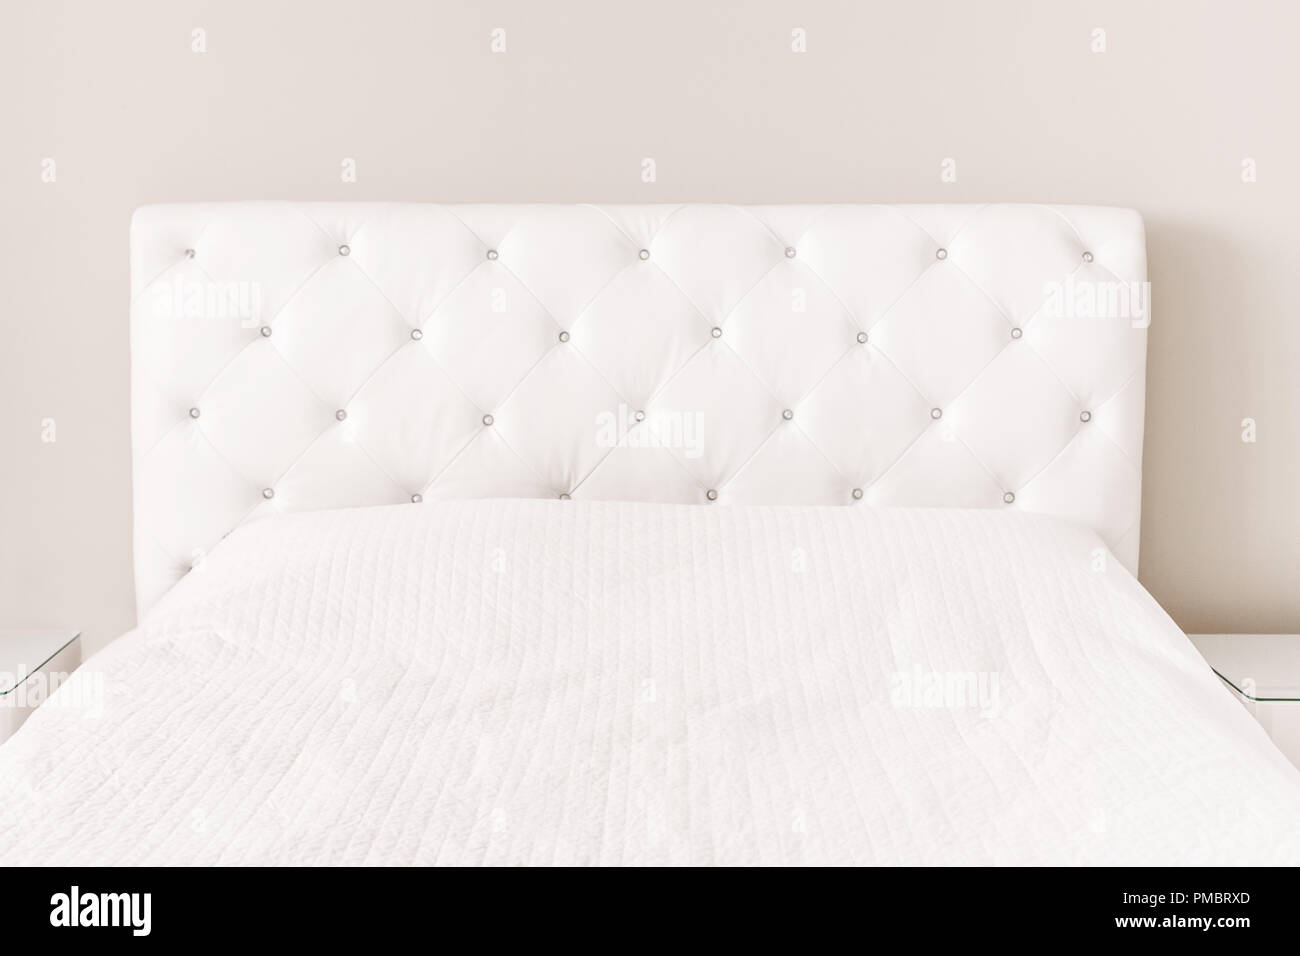 Empty White Bed With Duvet Cover Bedspread. Master Bedroom With Light  Walls. Modern Furniture At Home With Nobody. Background Mockup With  Copyspace Fo